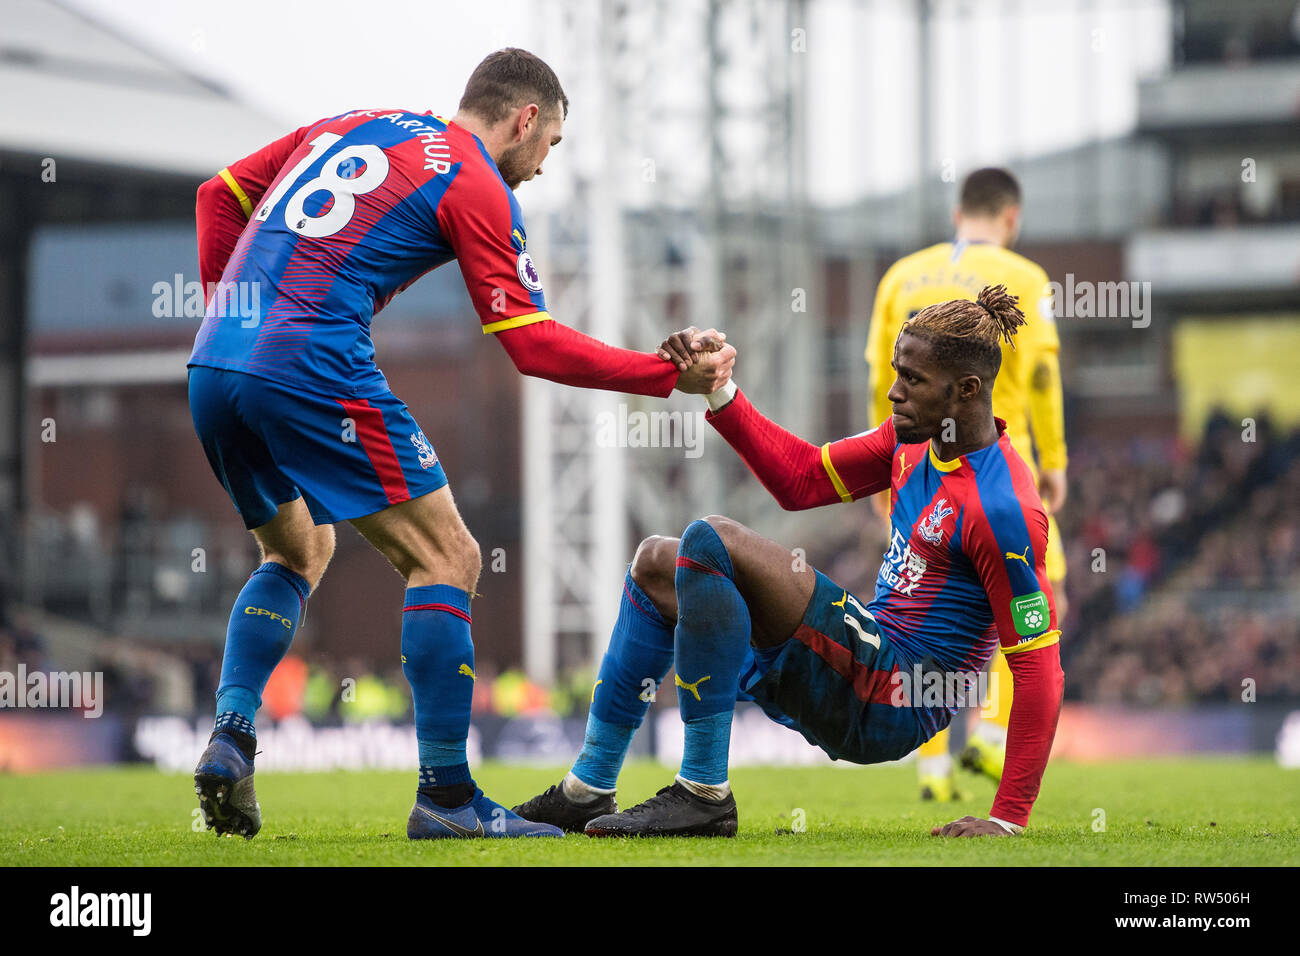 LONDON, ENGLAND - DECEMBER 30: James McArthur and Wilfried Zaha of Crystal Palace reaction during the Premier League match between Crystal Palace and Chelsea FC at Selhurst Park on December 30, 2018 in London, United Kingdom. (Photo by MB Media/Getty Images) - Stock Image